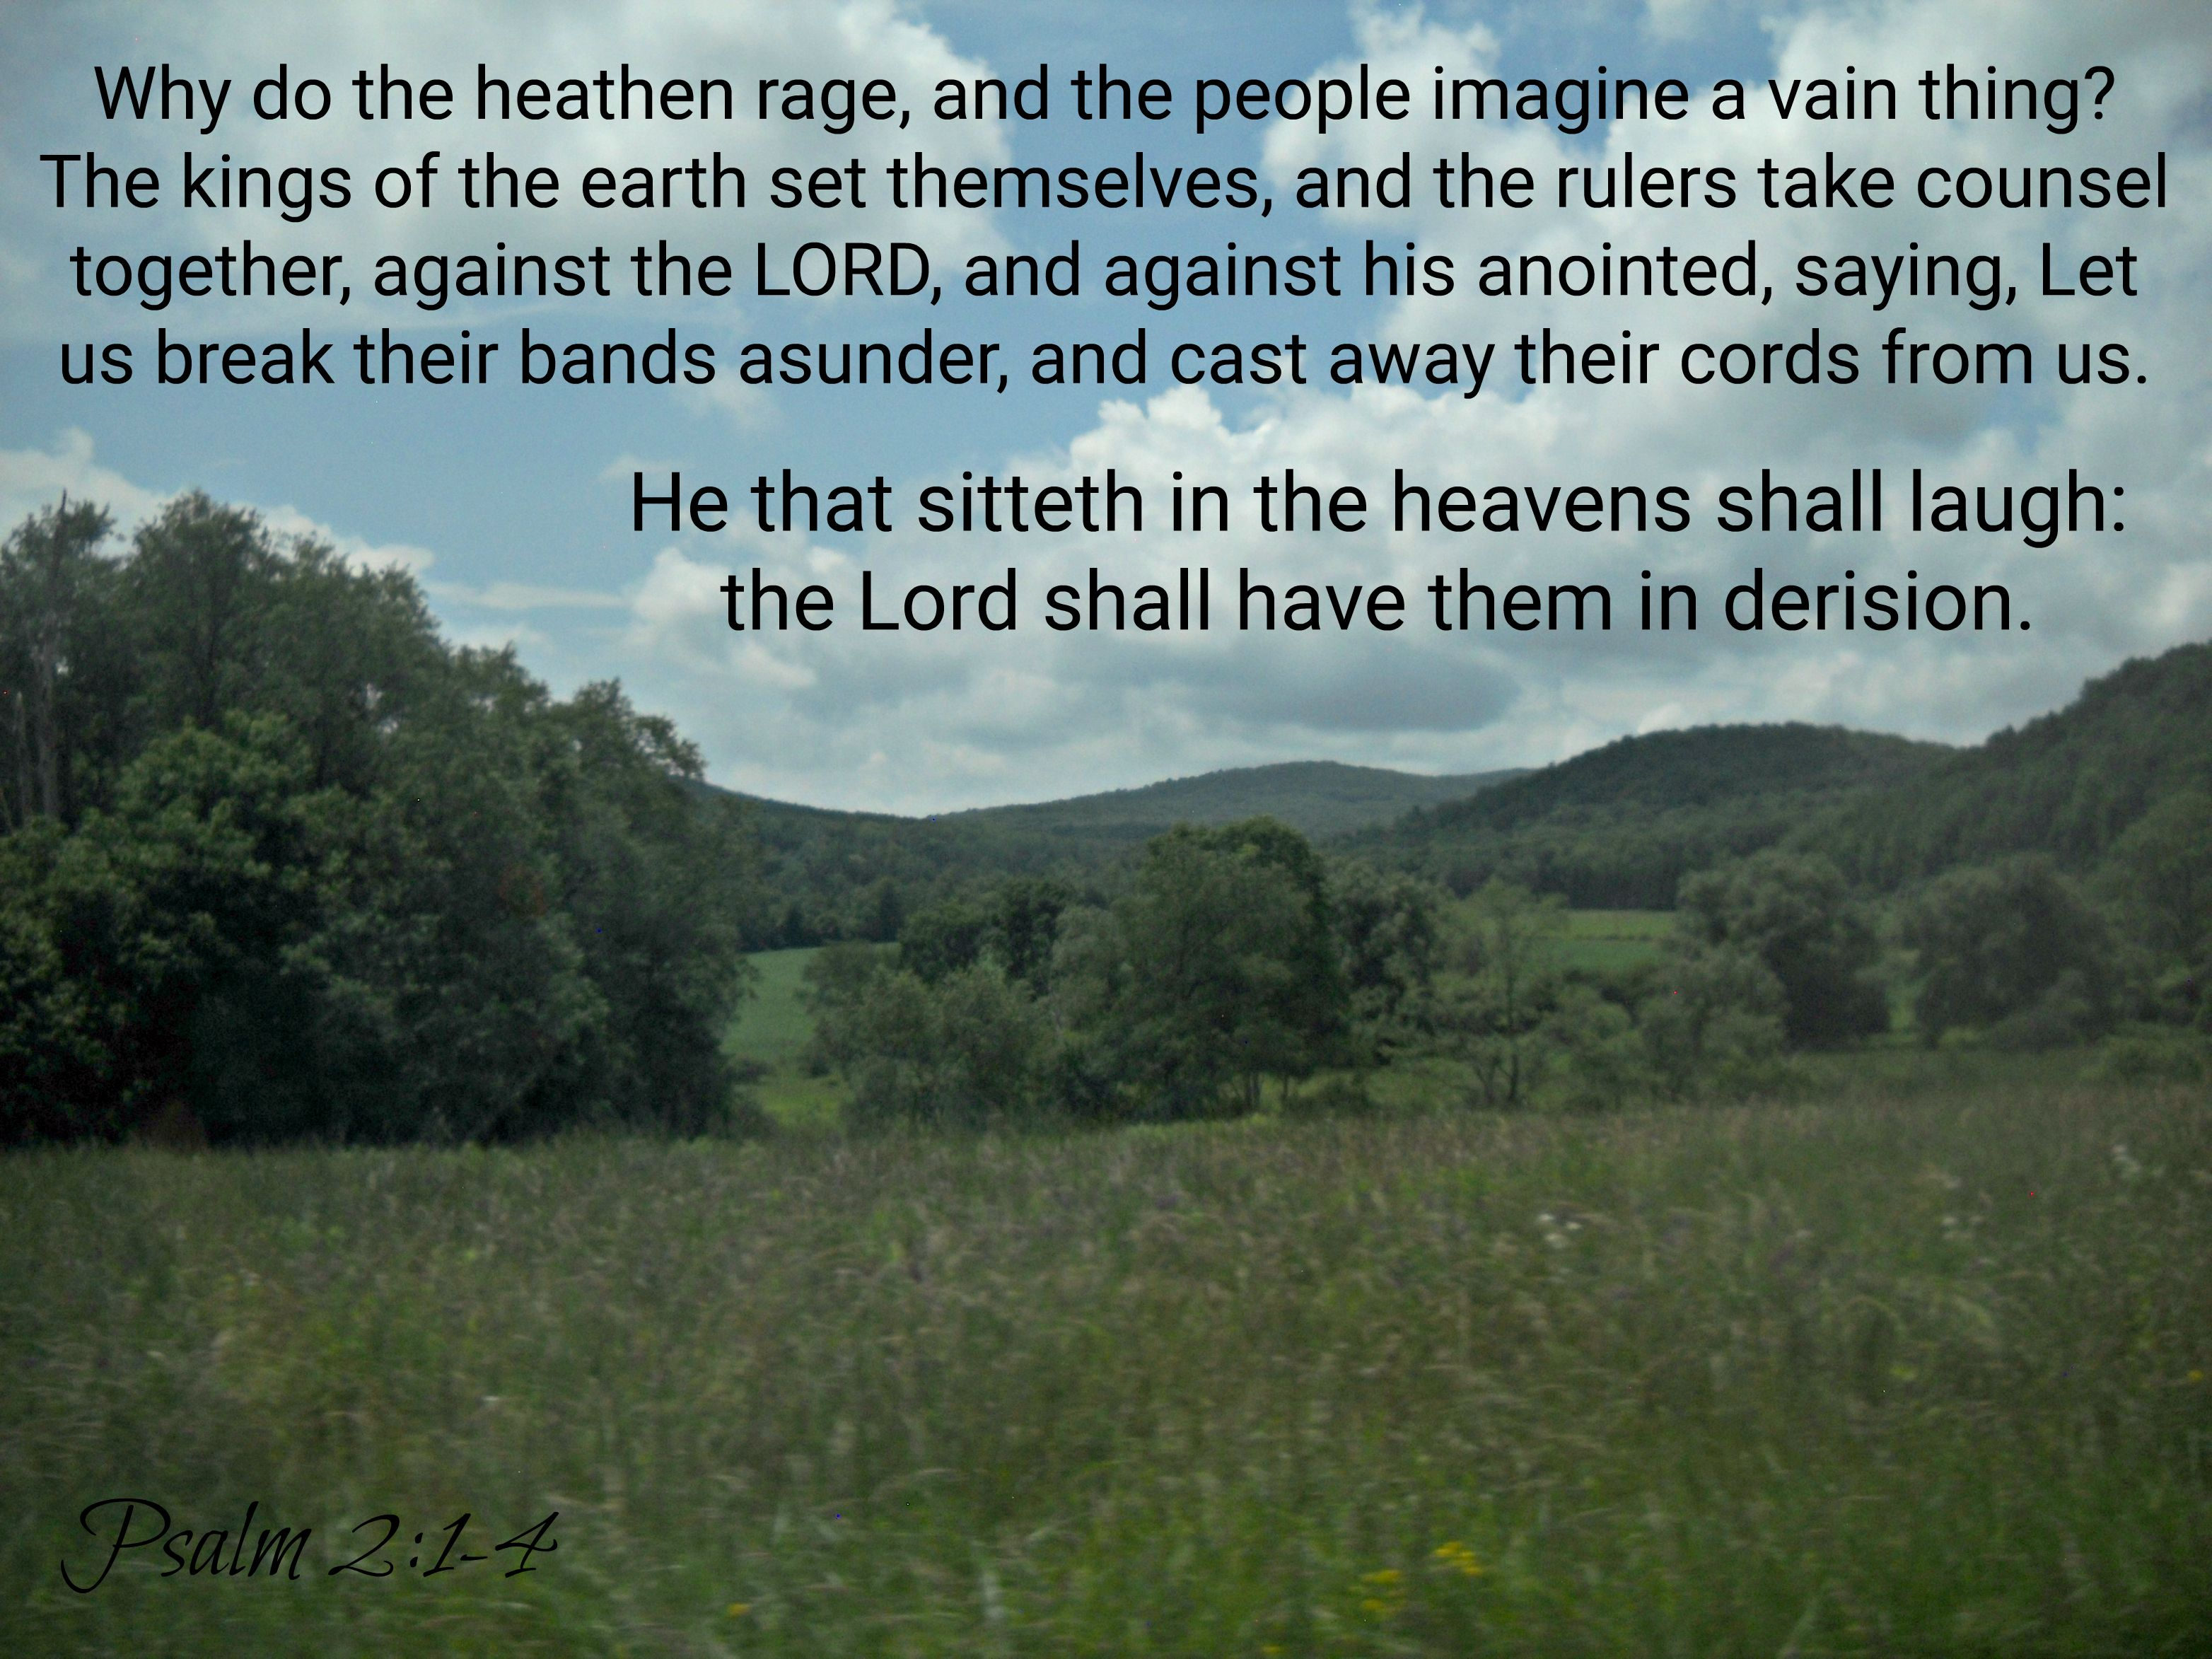 Psalms 2:1-4 1 Why do the heathen rage, and the people imagine a vain thing? 2 The kings of the earth set themselves,  and the r… | Book of psalms, Psalms, Sayings